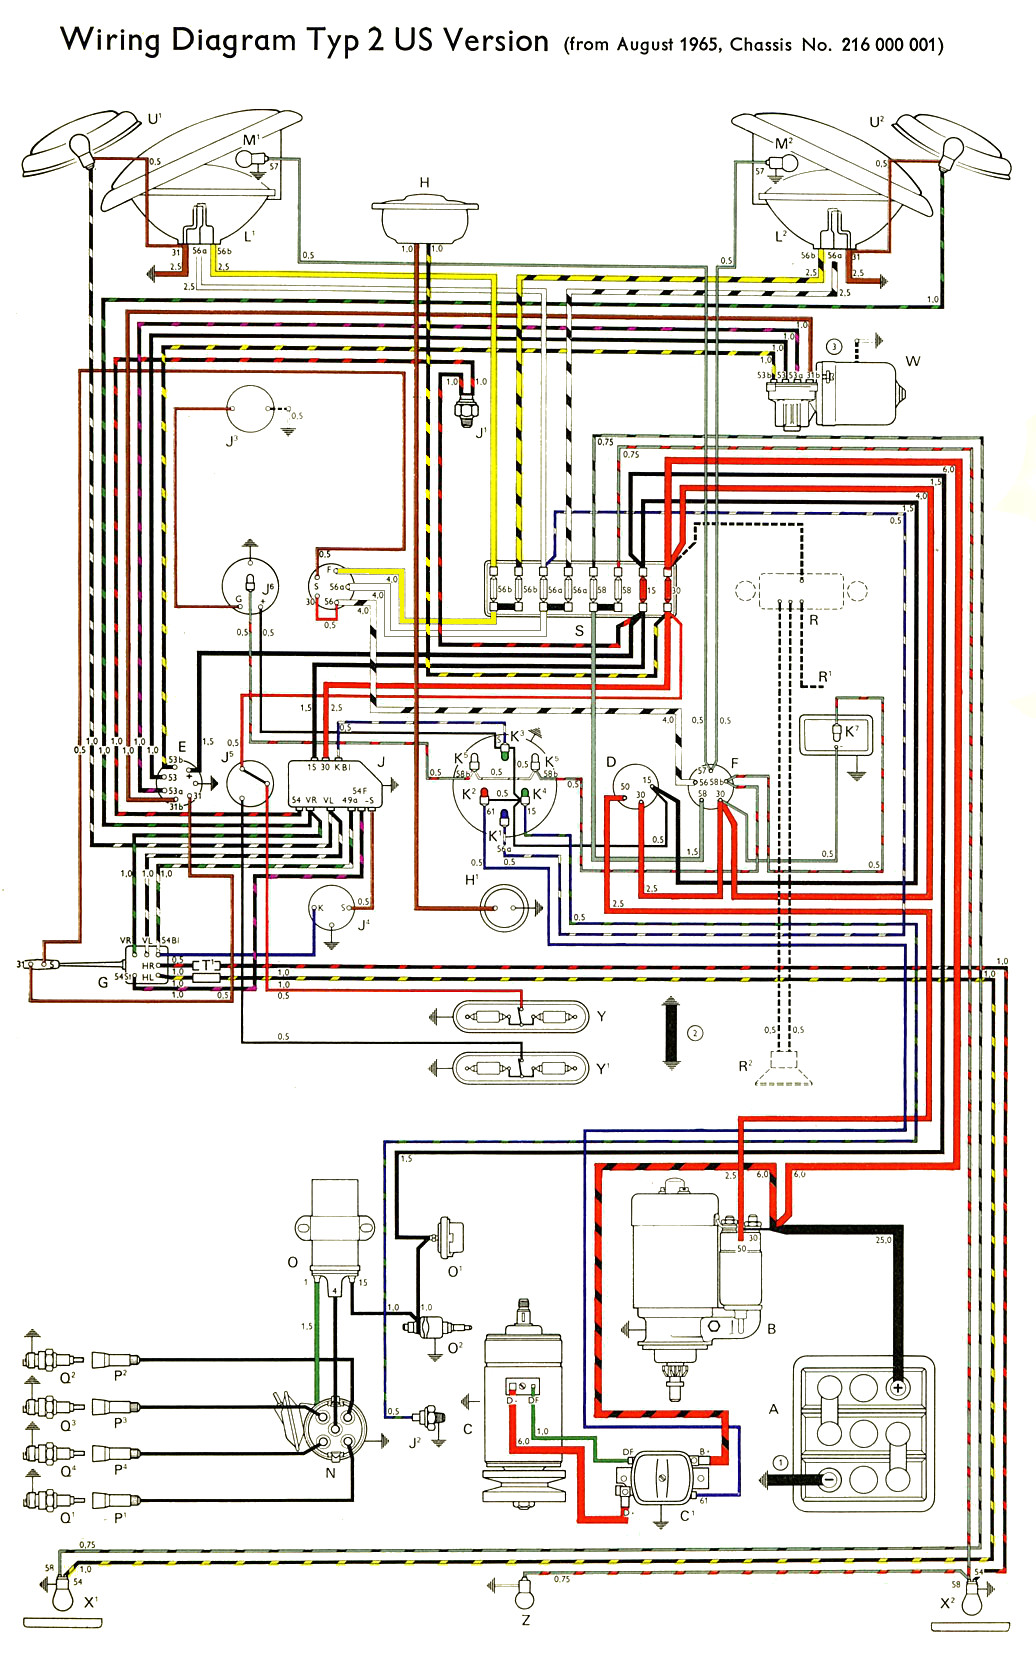 Simple Wiring Harness Diagram For Trike additionally 1608 furthermore Simple Headlight Wiring Diagram additionally 164059 84 250r Headlight Wiring moreover Xs650 Pamco Ignition Wiring Diagram. on vw dune buggy ignition wiring diagram